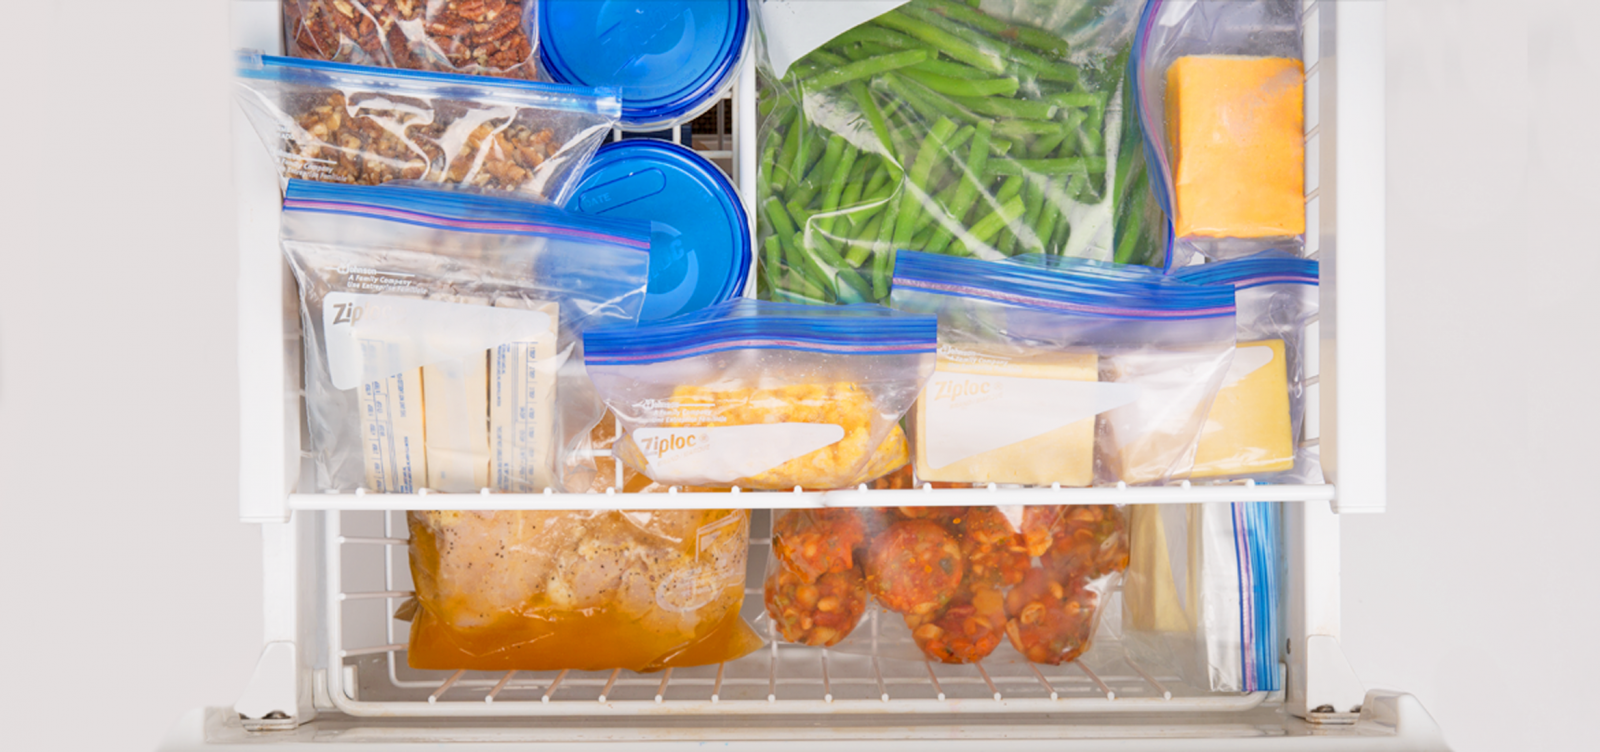 freezing foods for the home Find great deals on ebay for freezing foods at home shop with confidence.